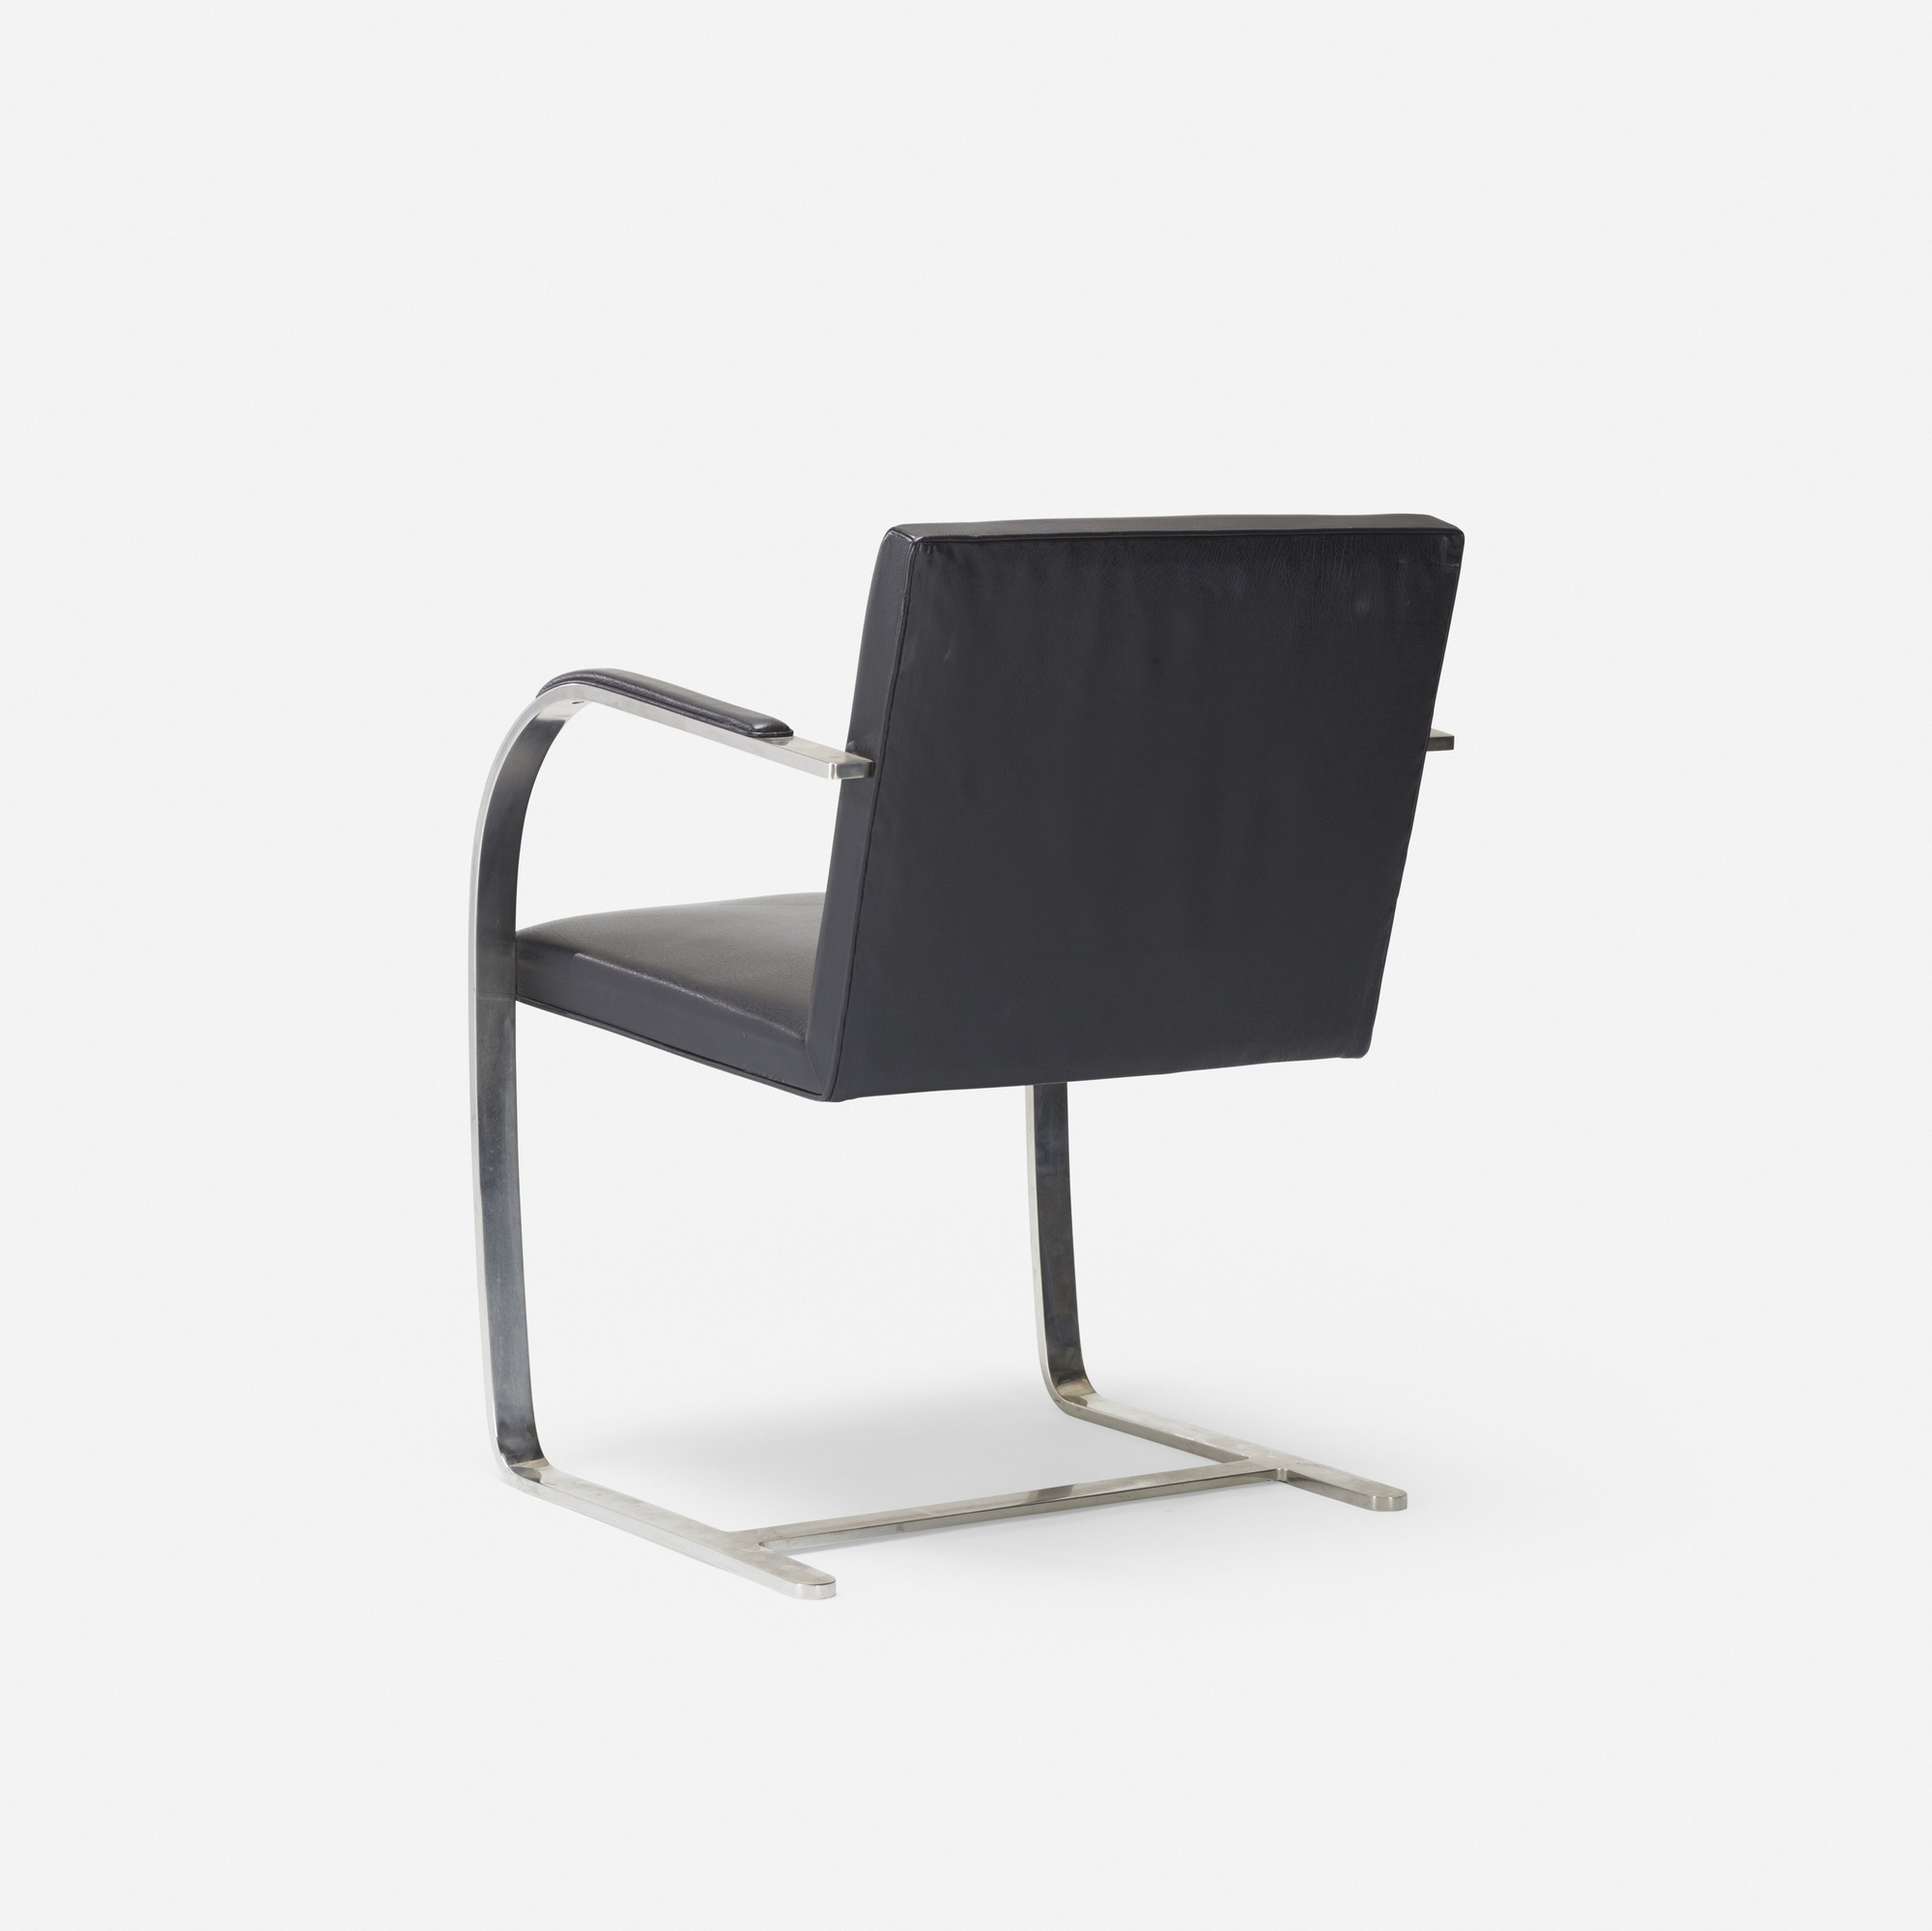 Beautiful ... 570: Ludwig Mies Van Der Rohe / Brno Chair (2 Of 2) Pictures Gallery